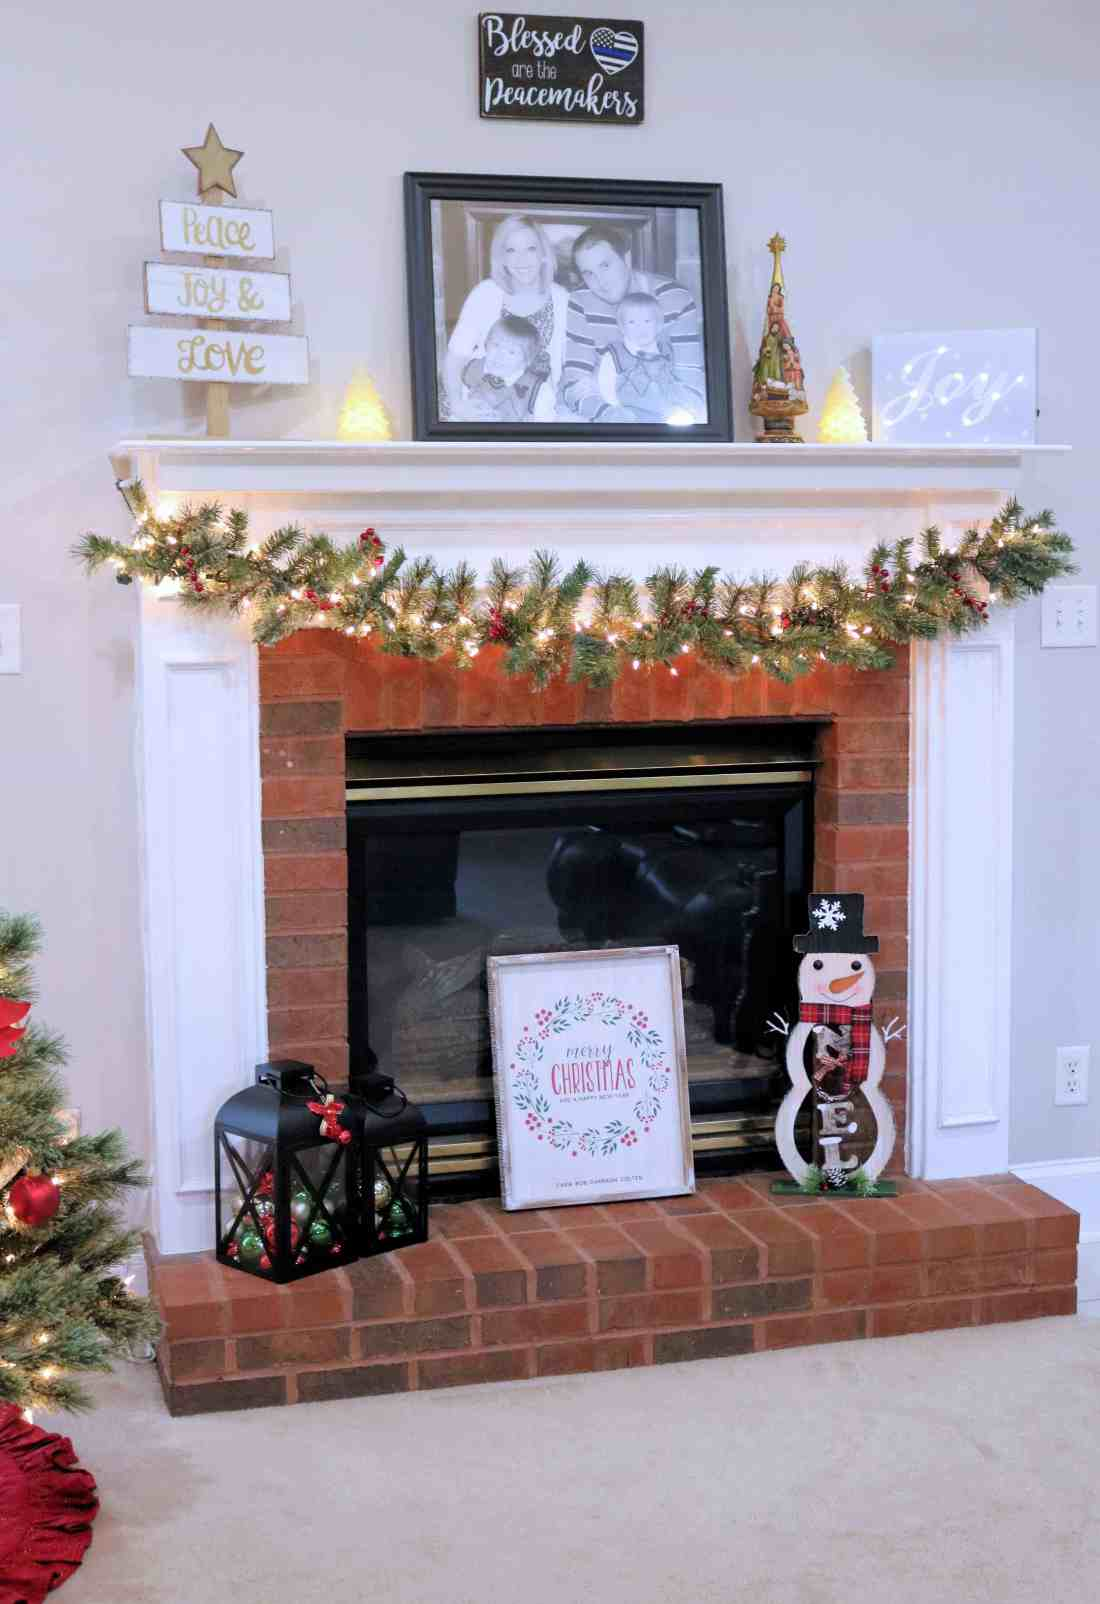 Looking for some gorgeous Christmas decorating ideas? Today I'm sharing our home's beautiful Christmas decorations including some of my favorite personalized Christmas decorations from Personalization Mall. #ad #pmallgifts #personalizationmall #christmasdecorations